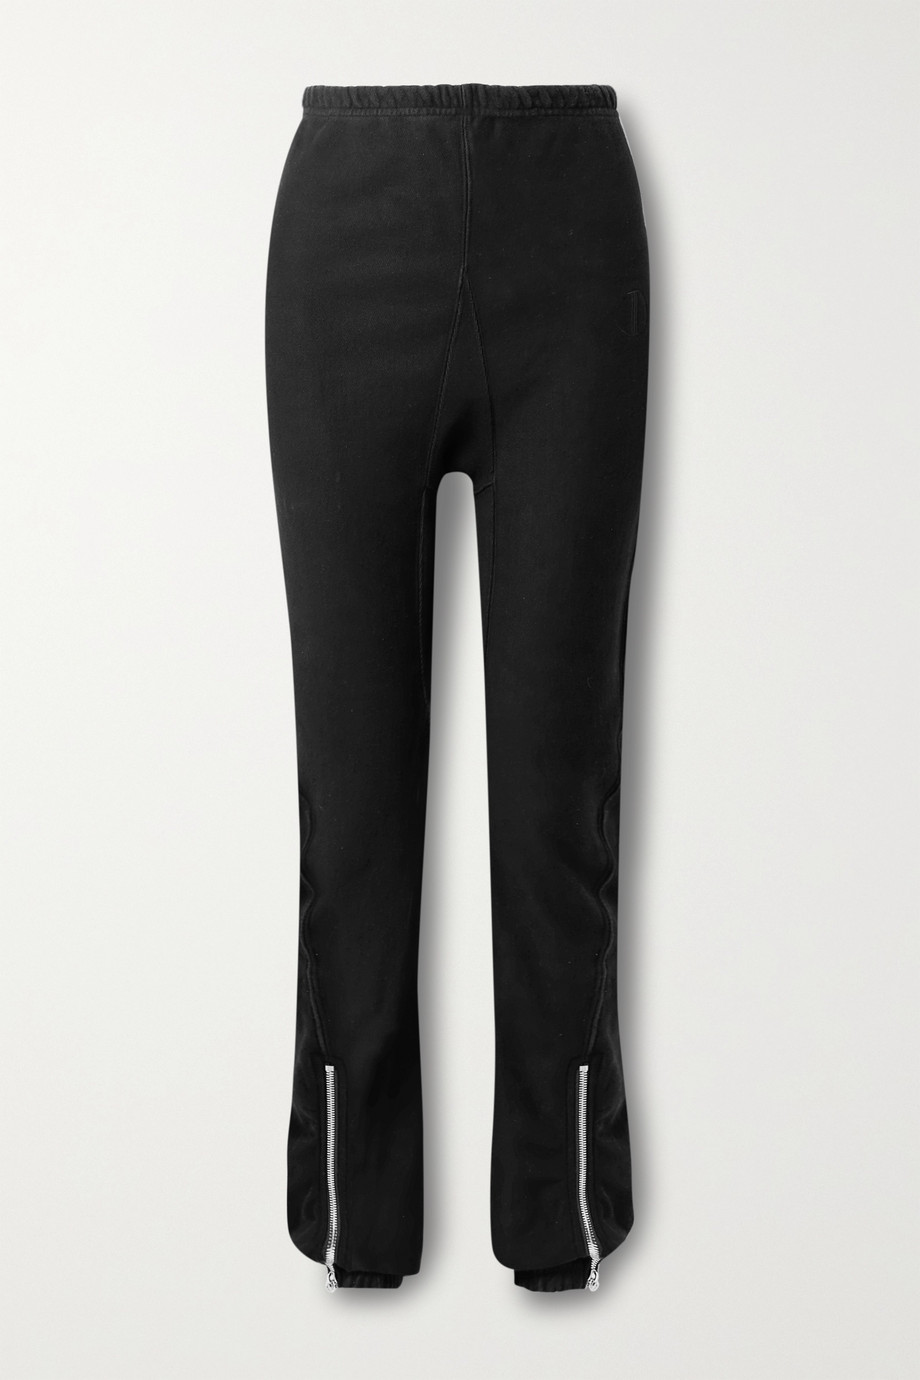 TRE by Natalie Ratabesi The Editor zip-detailed cotton-jersey track pants